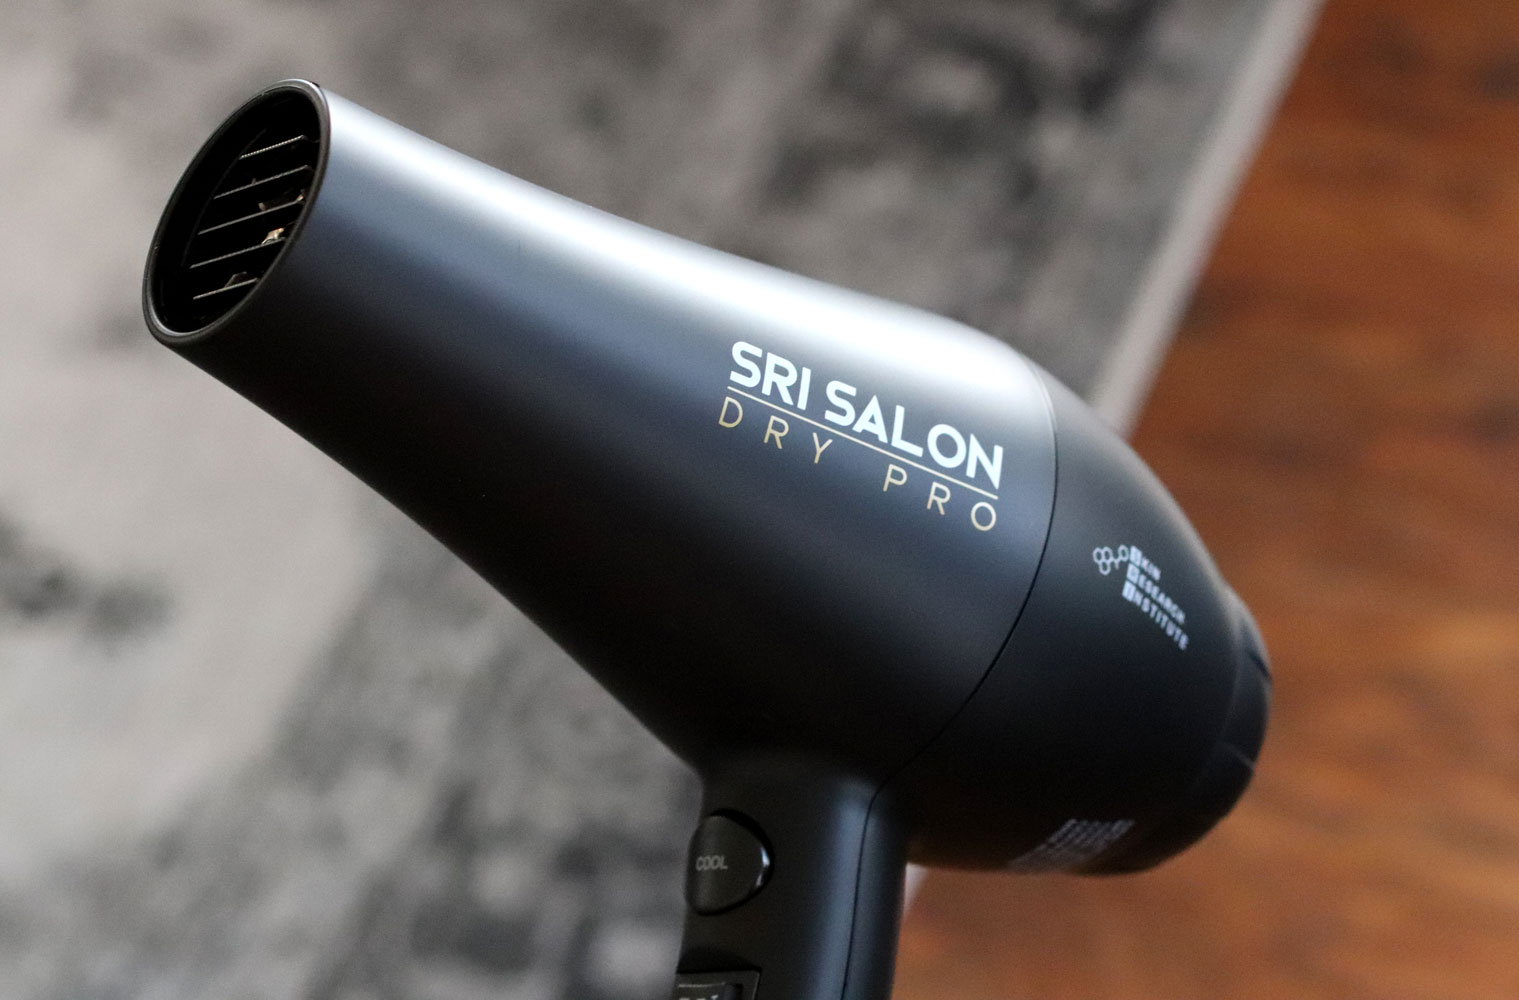 SRI Salon Dry Pro hairdryer with far-infrared and ion technology